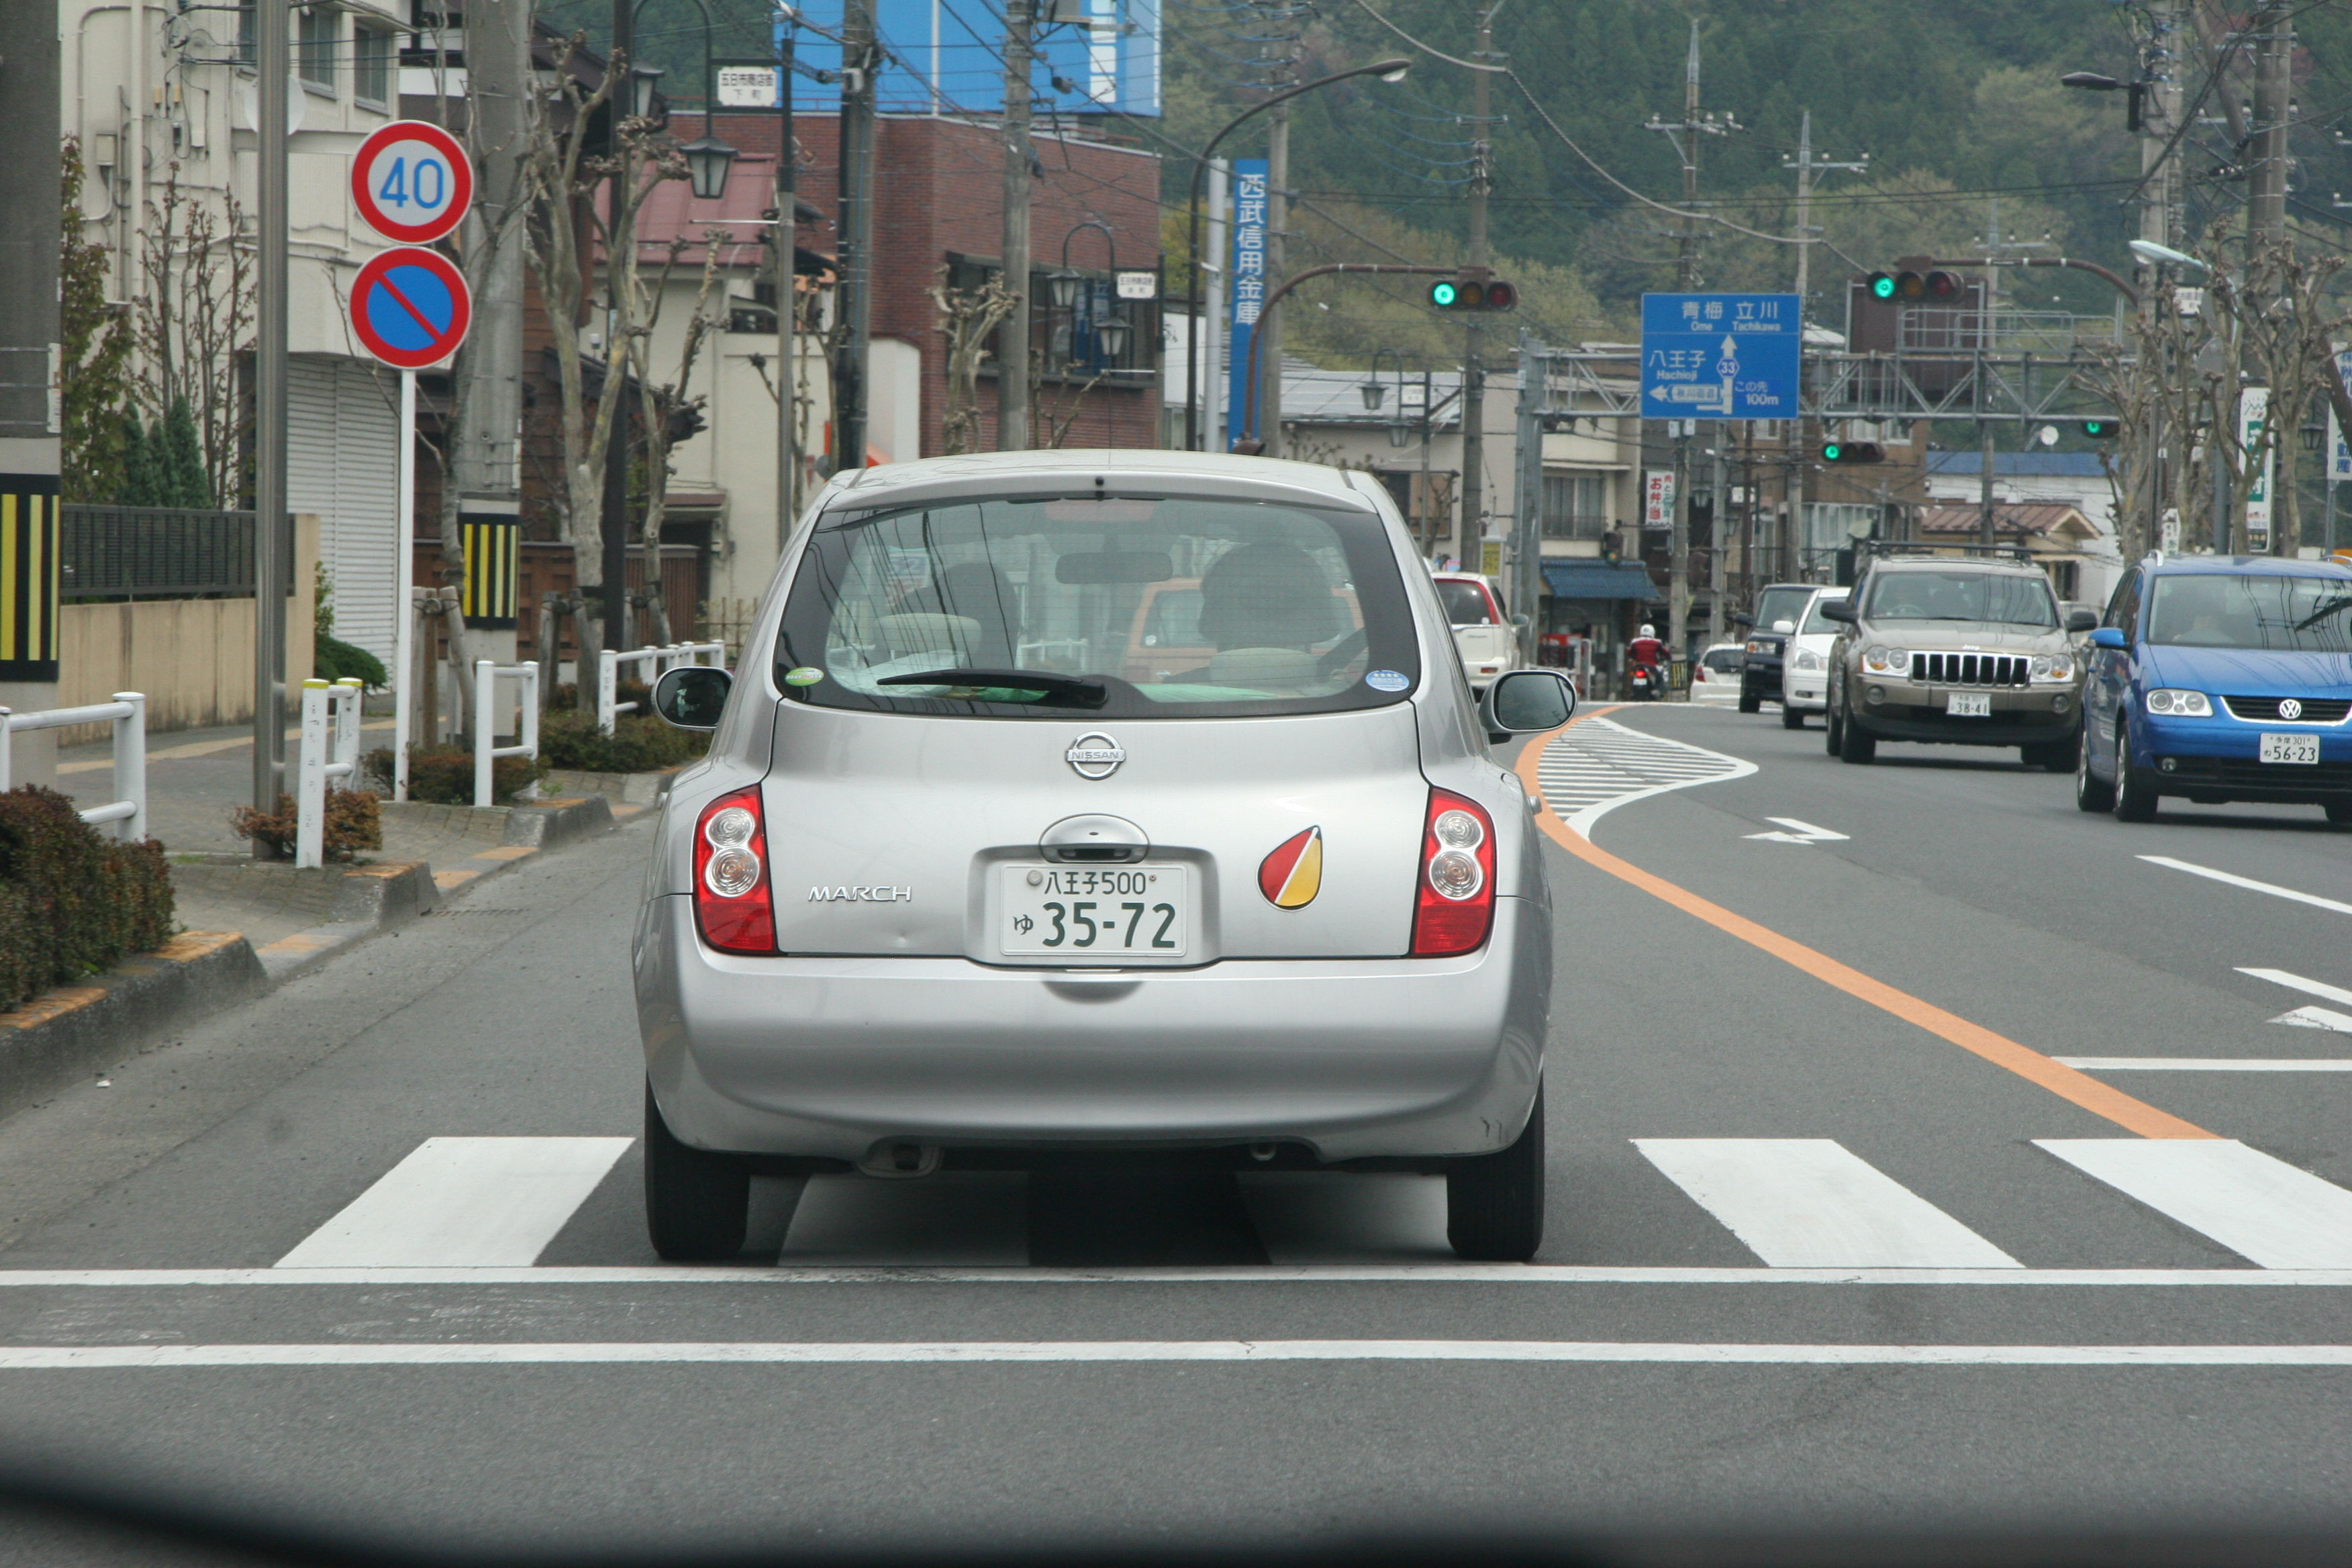 Japanese Car Magnets (and what they mean)